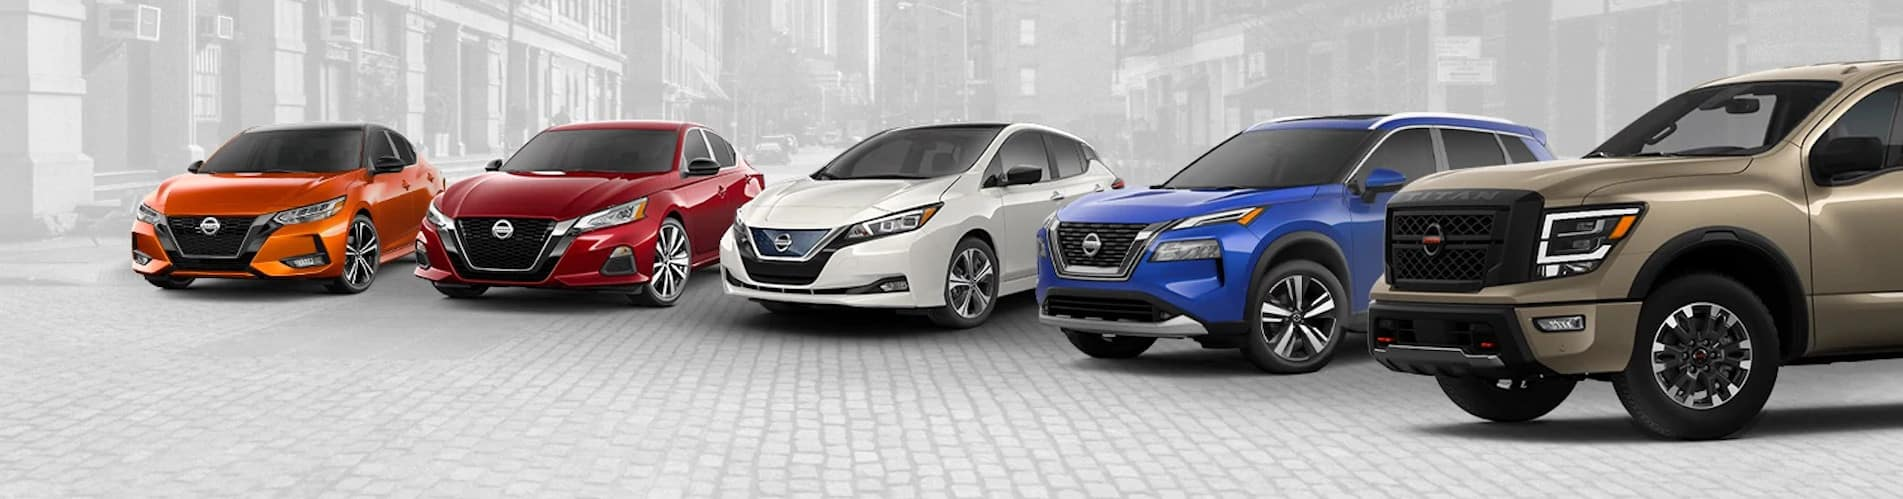 Nissan Model Lineup